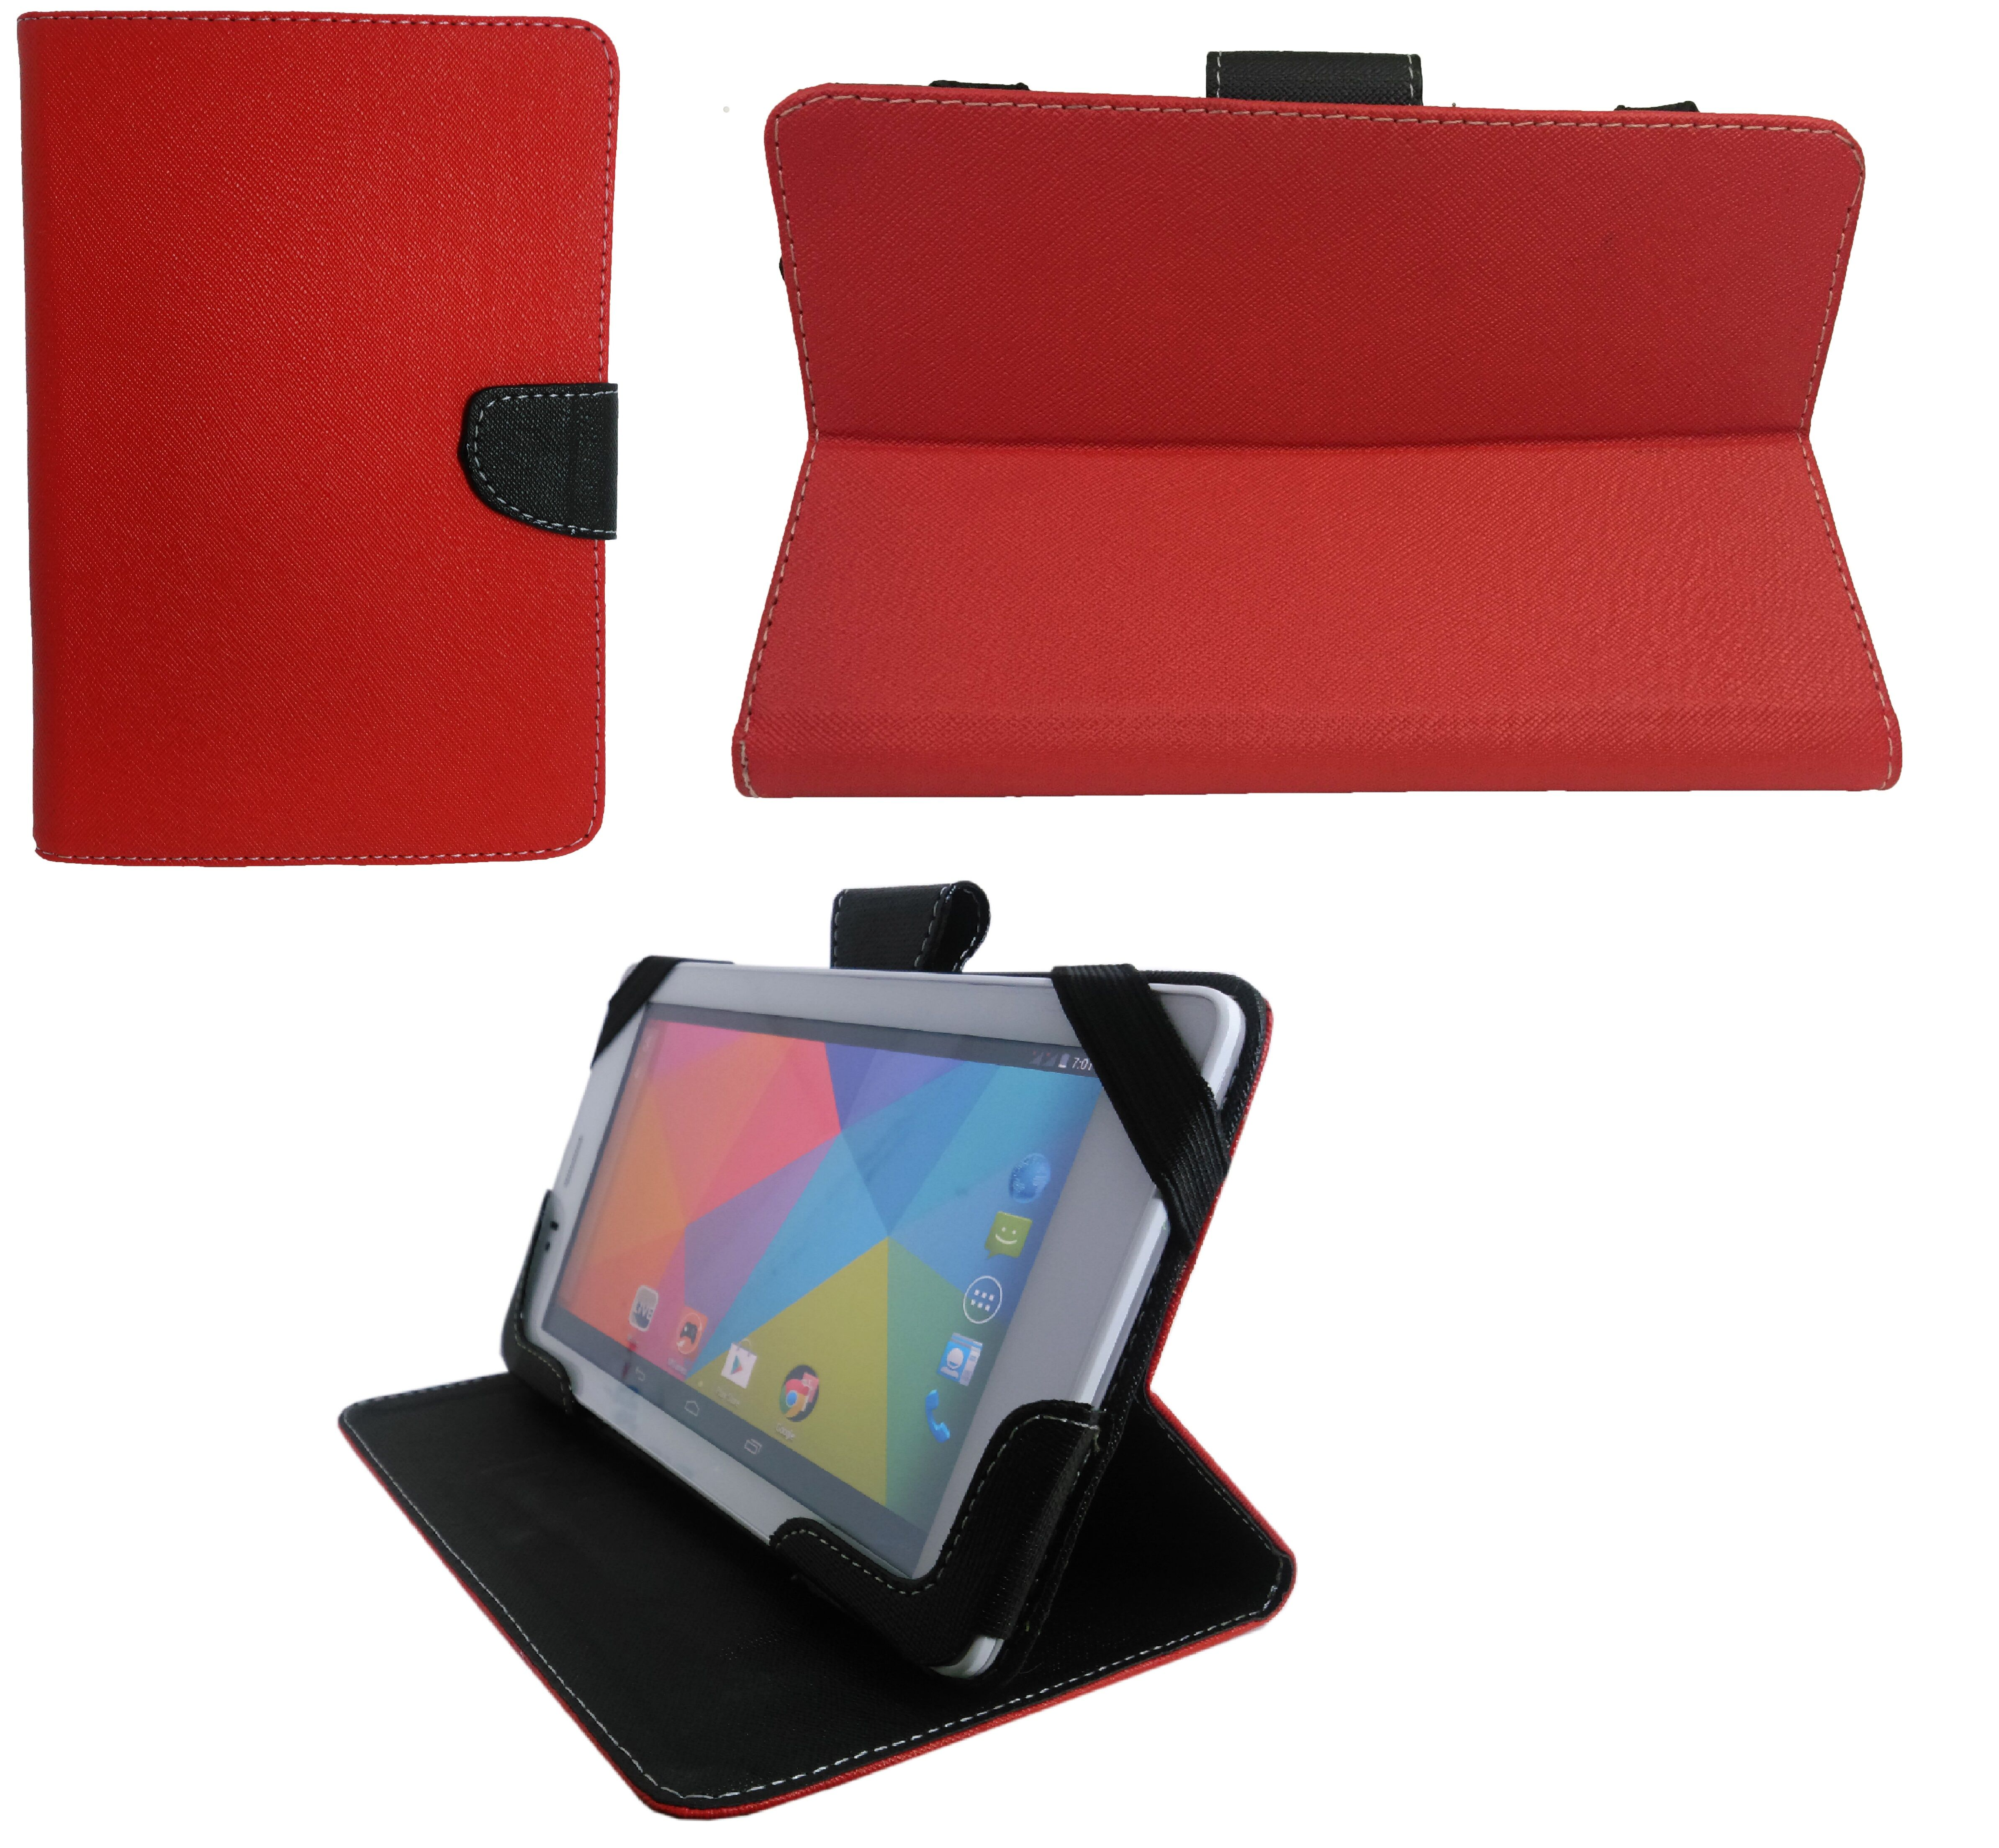 GADGETWORLD Luxury Mercury Book Cover for Lenovo Tab 2 A7 10  Red